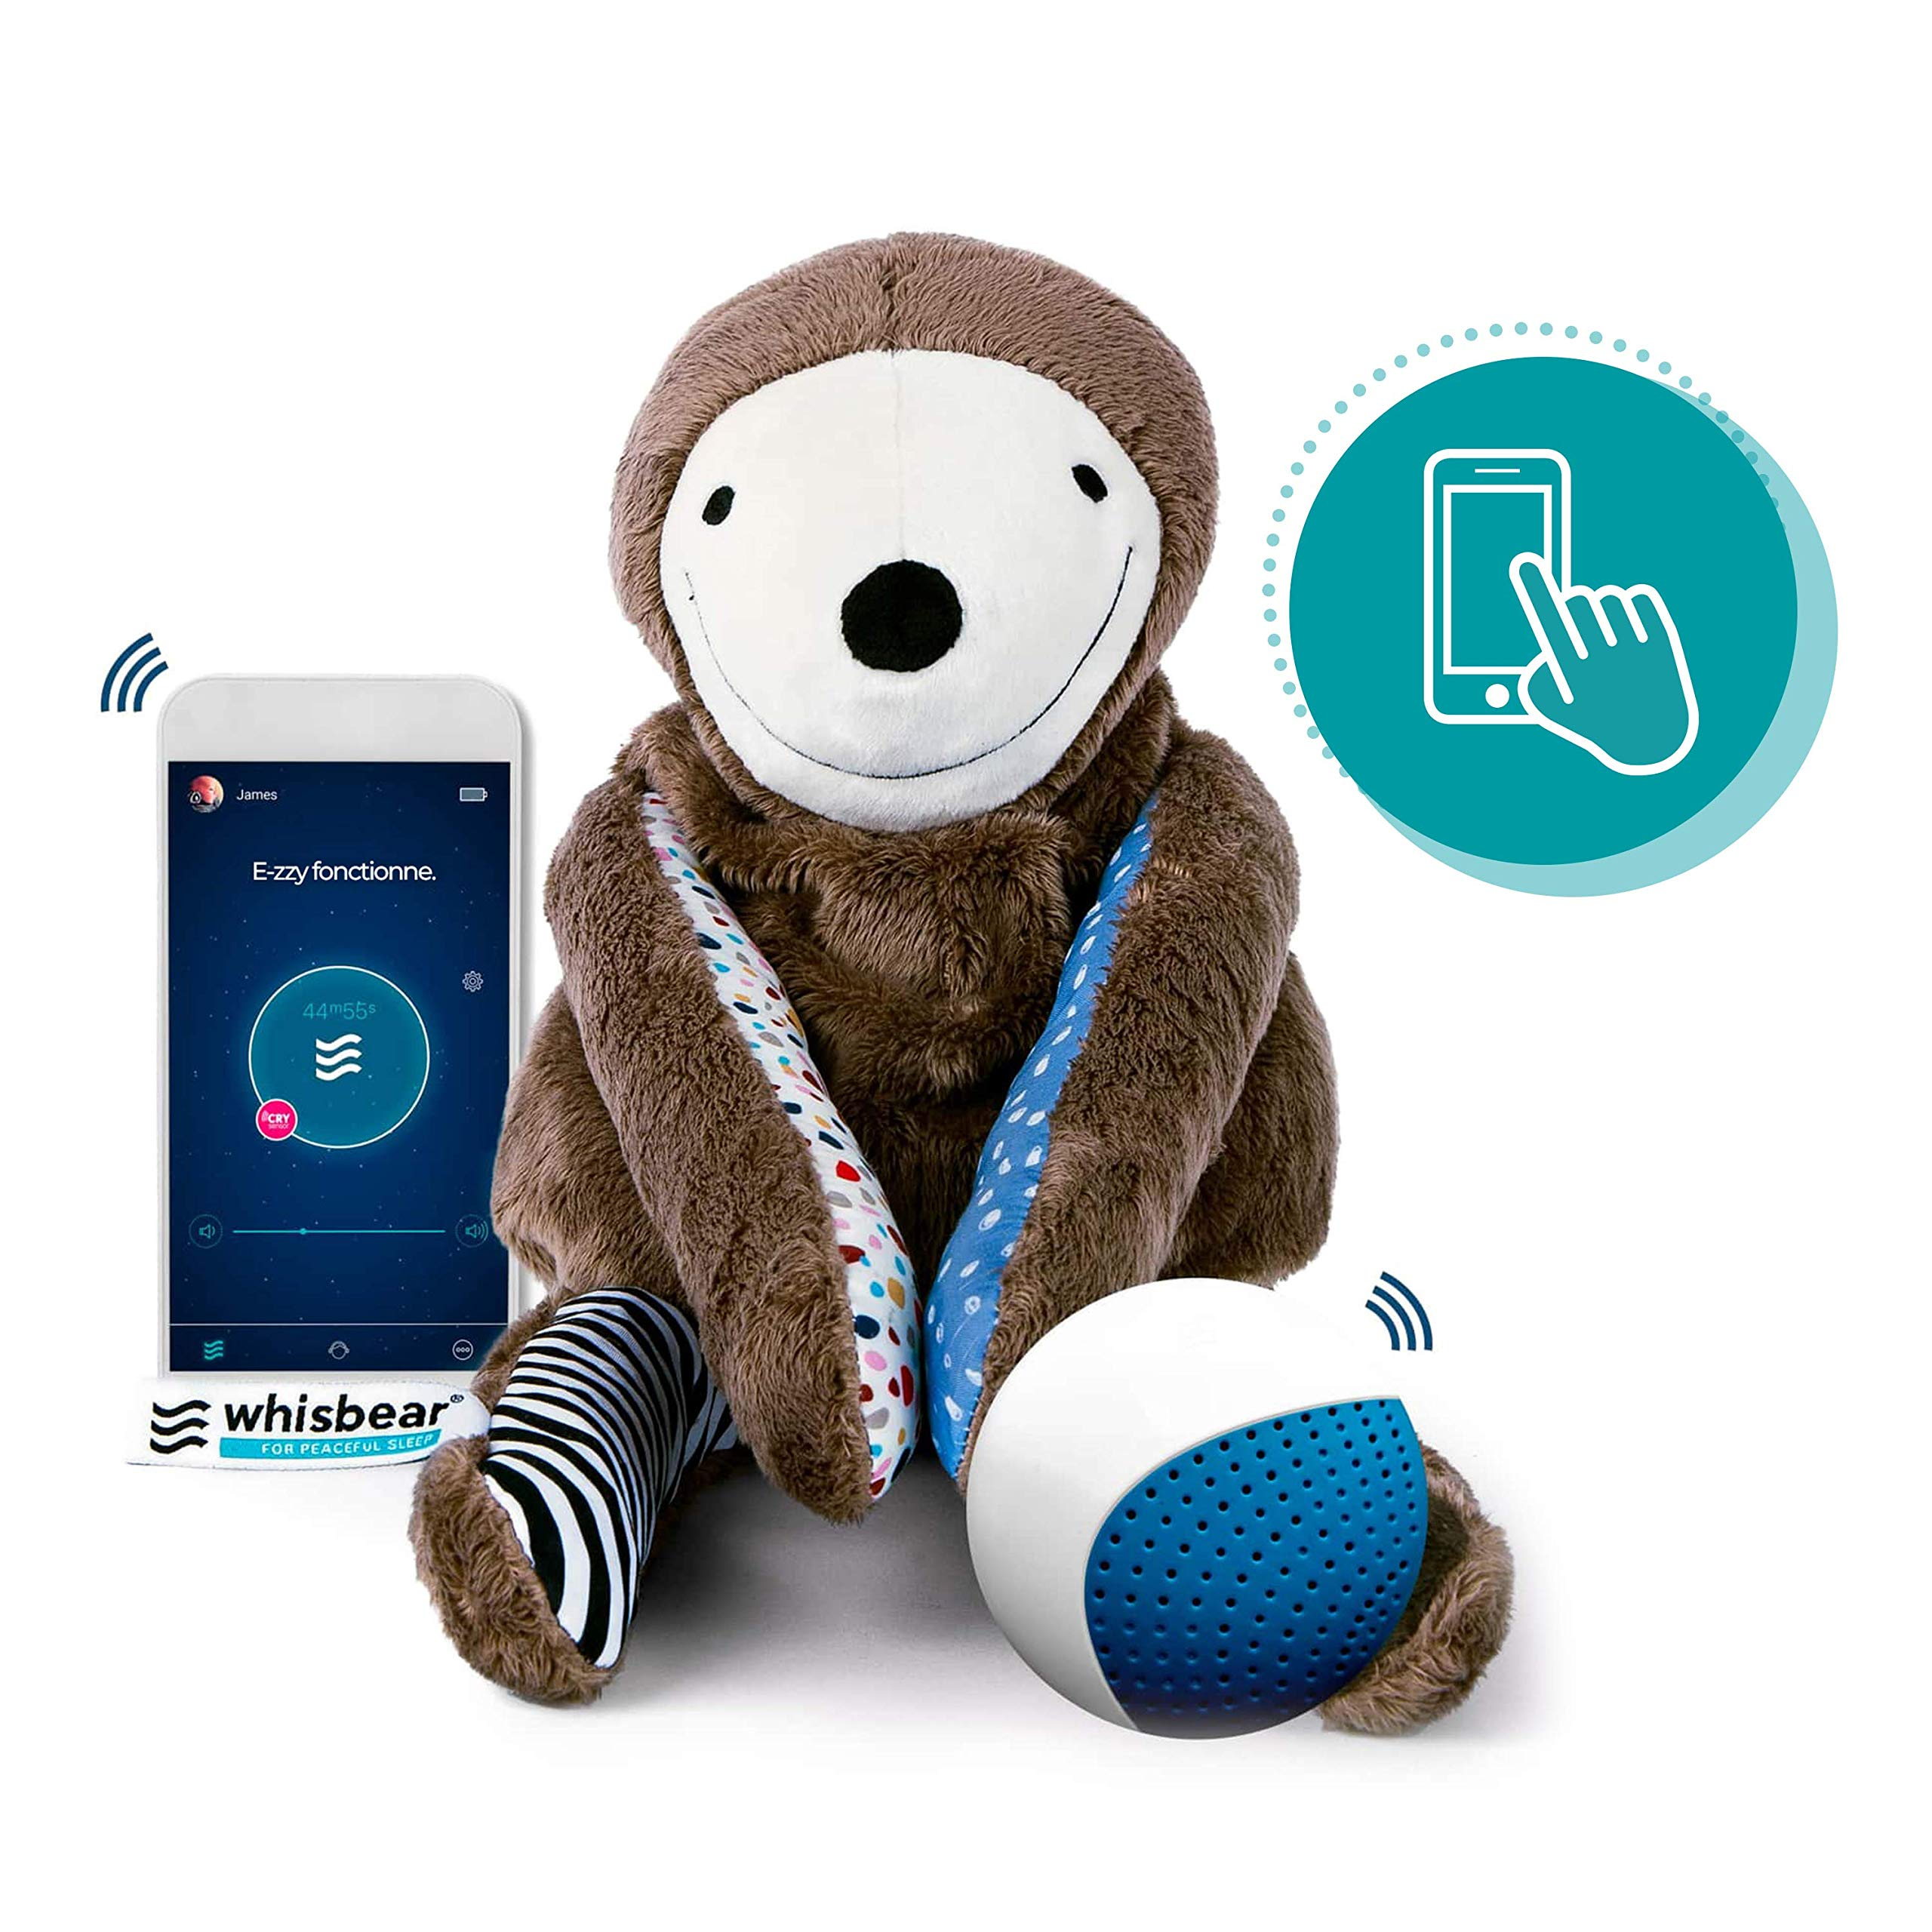 Whisbear E-zzy The Sloth, app Operated Soothing Toy, Baby Sleep Monitor, Parents' Assistant, Helps Babies Fall Asleep with a Calming Sound, reacts to Babies' Crying, Safe Sensory Toy